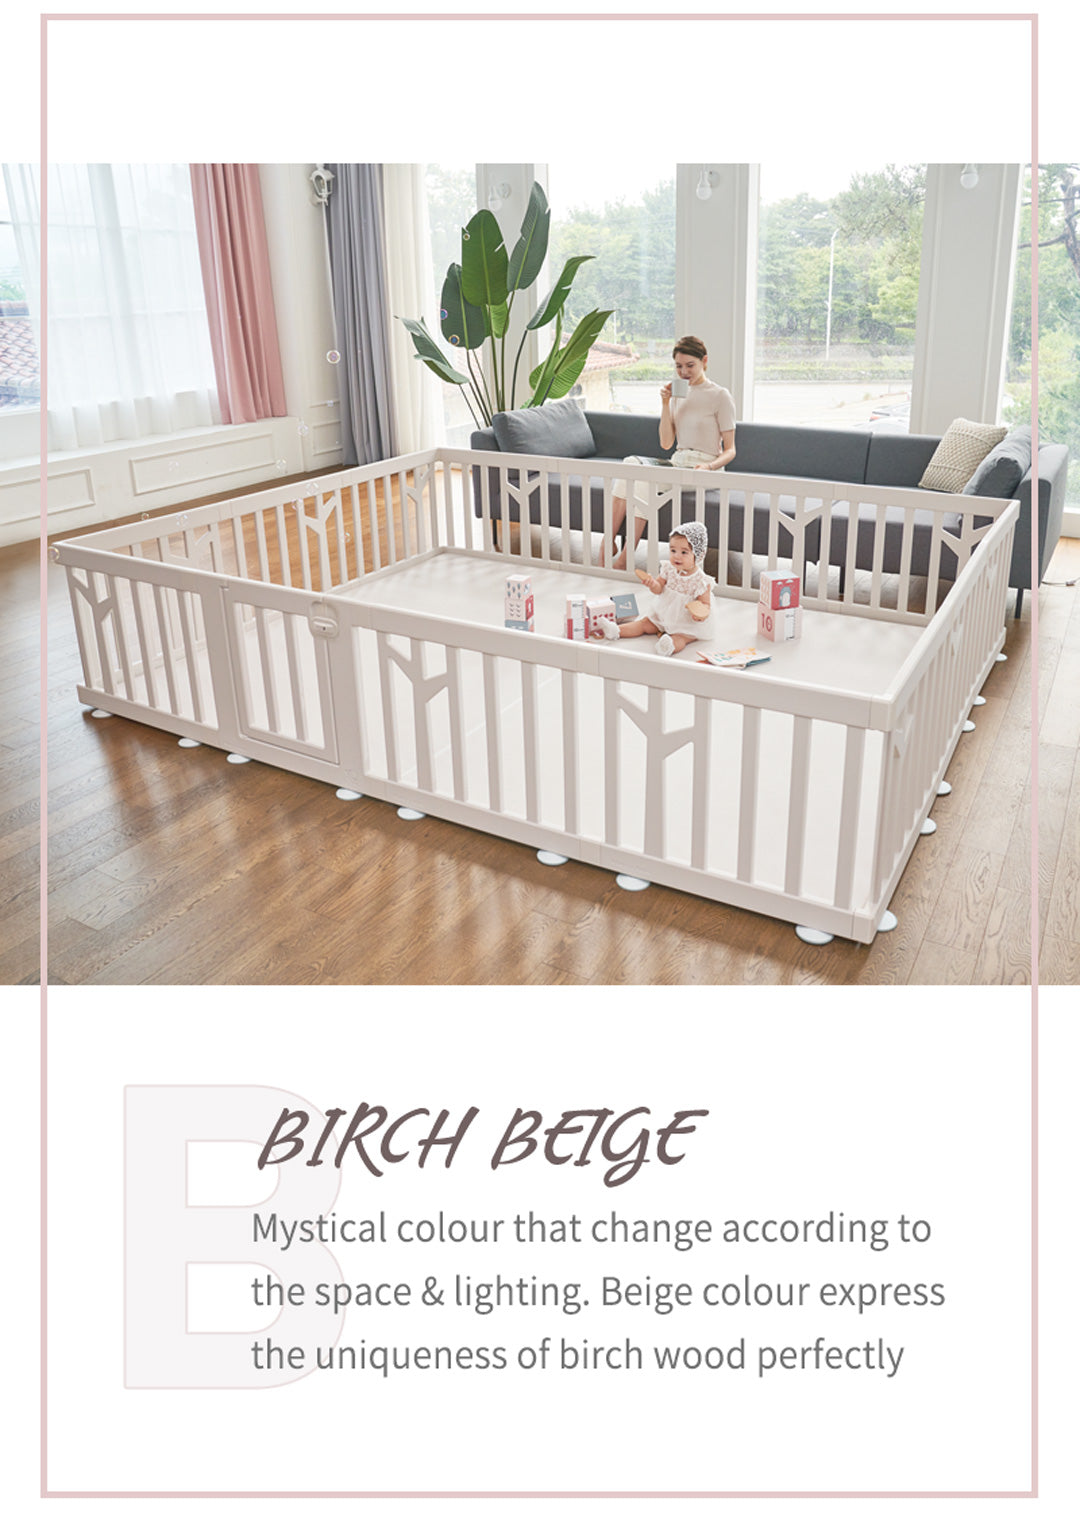 birch baby play yard beige